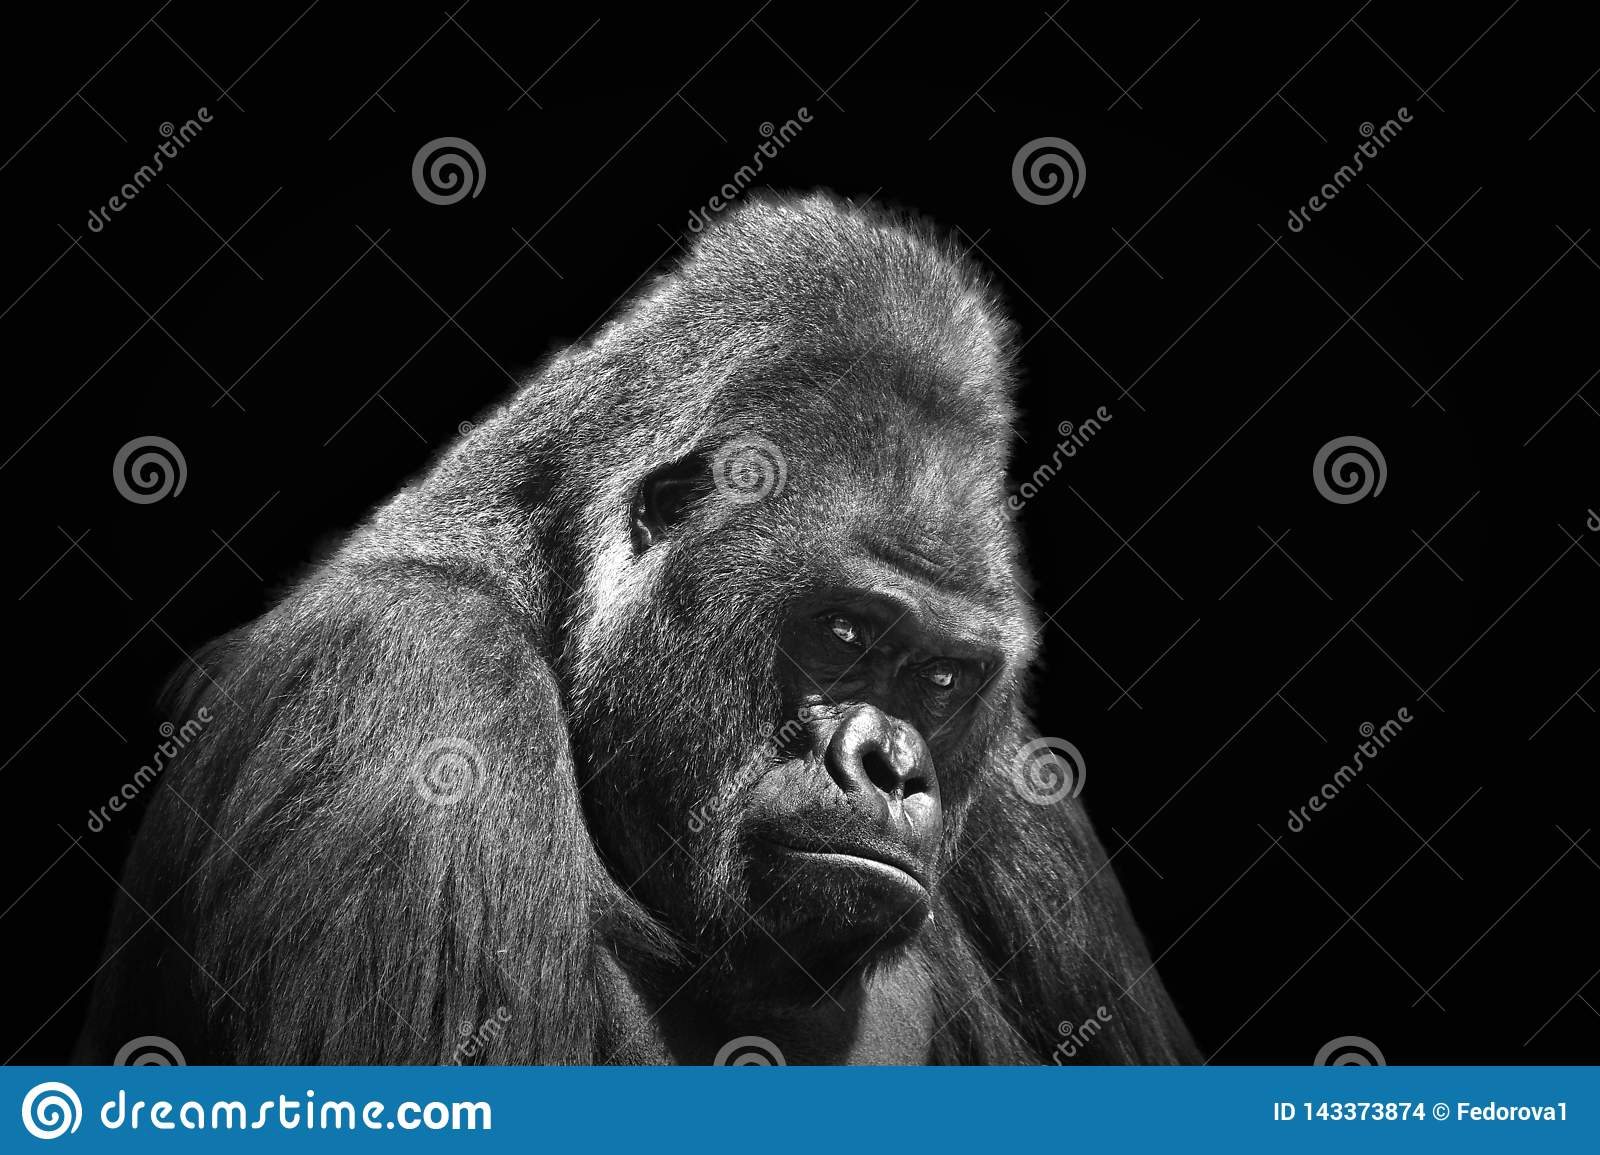 Black and white portrait in profile of an adult male gorilla